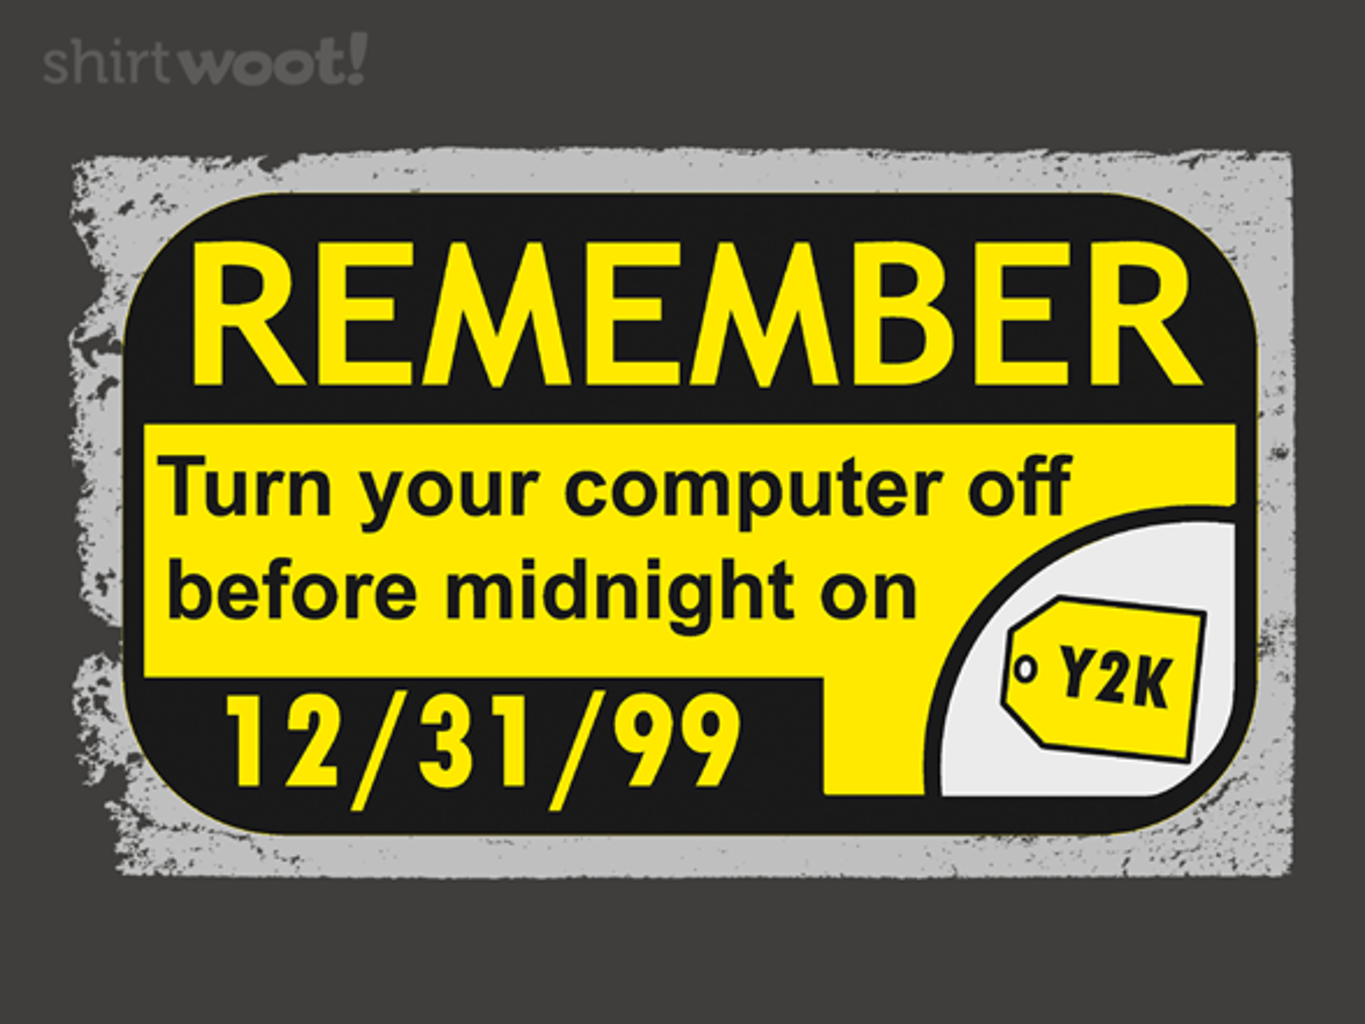 Woot!: Y2K...the end?